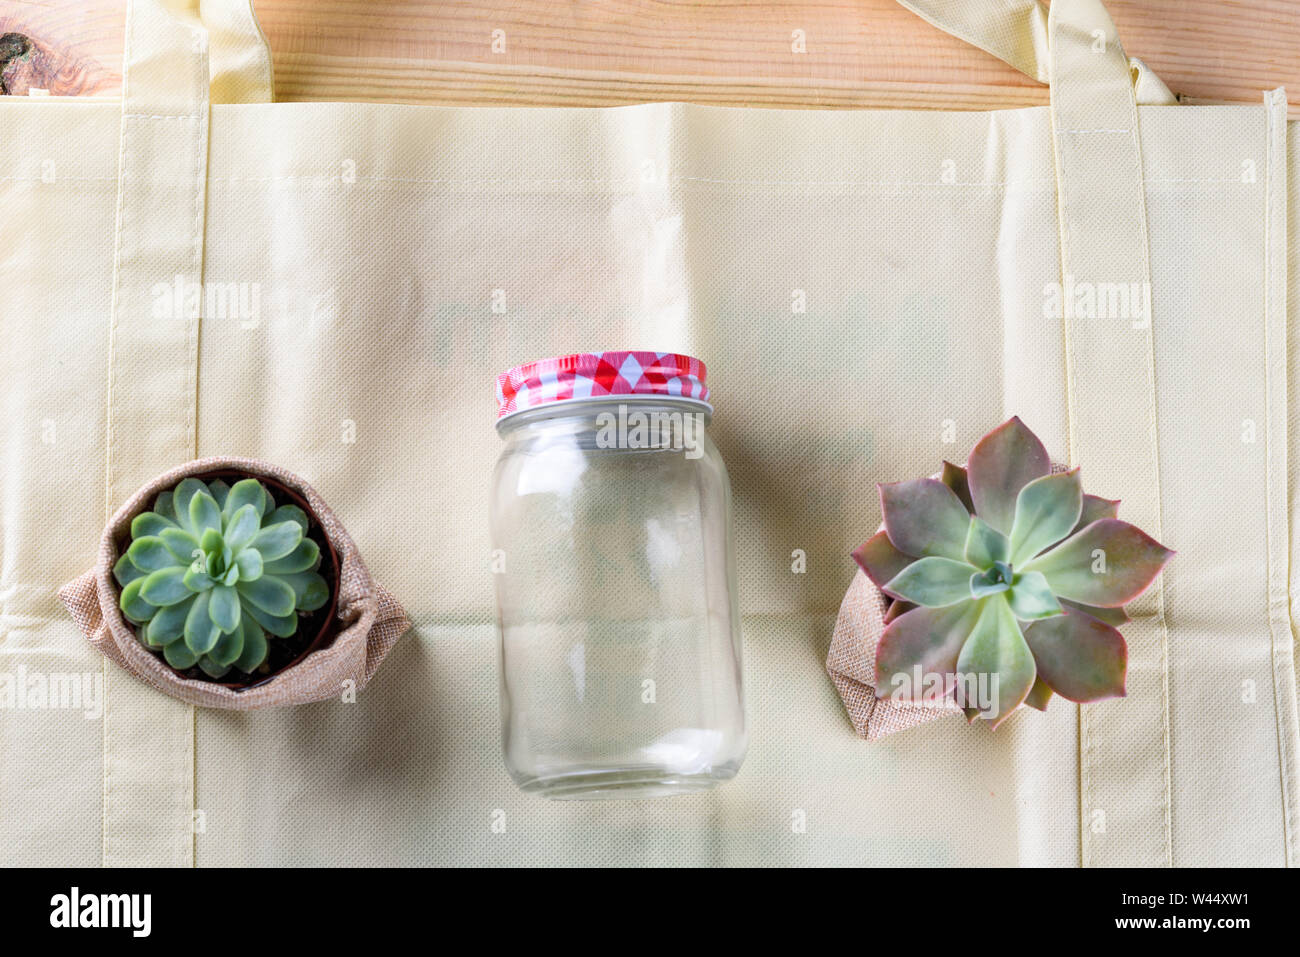 World free of plastic.Green products - bag made from bamboo or reuse, succulent and glass jar on nature wood background. Stock Photo